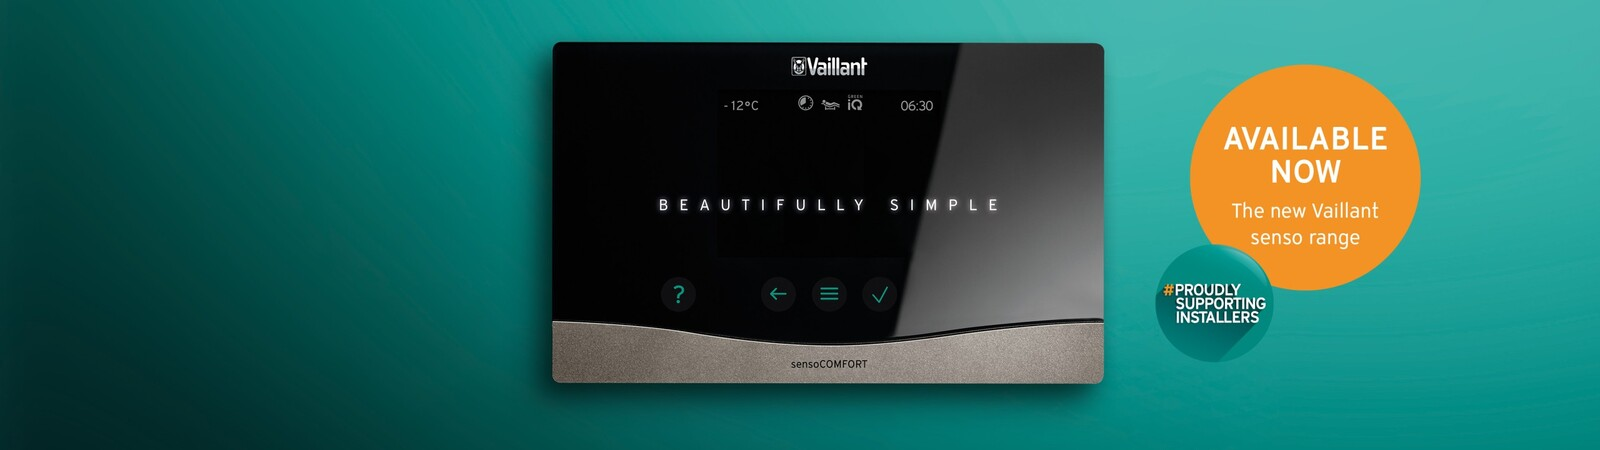 "The Vaillant sensoCOMFORT image stating ""Beautifully simple"" and that it is ""Available now"""